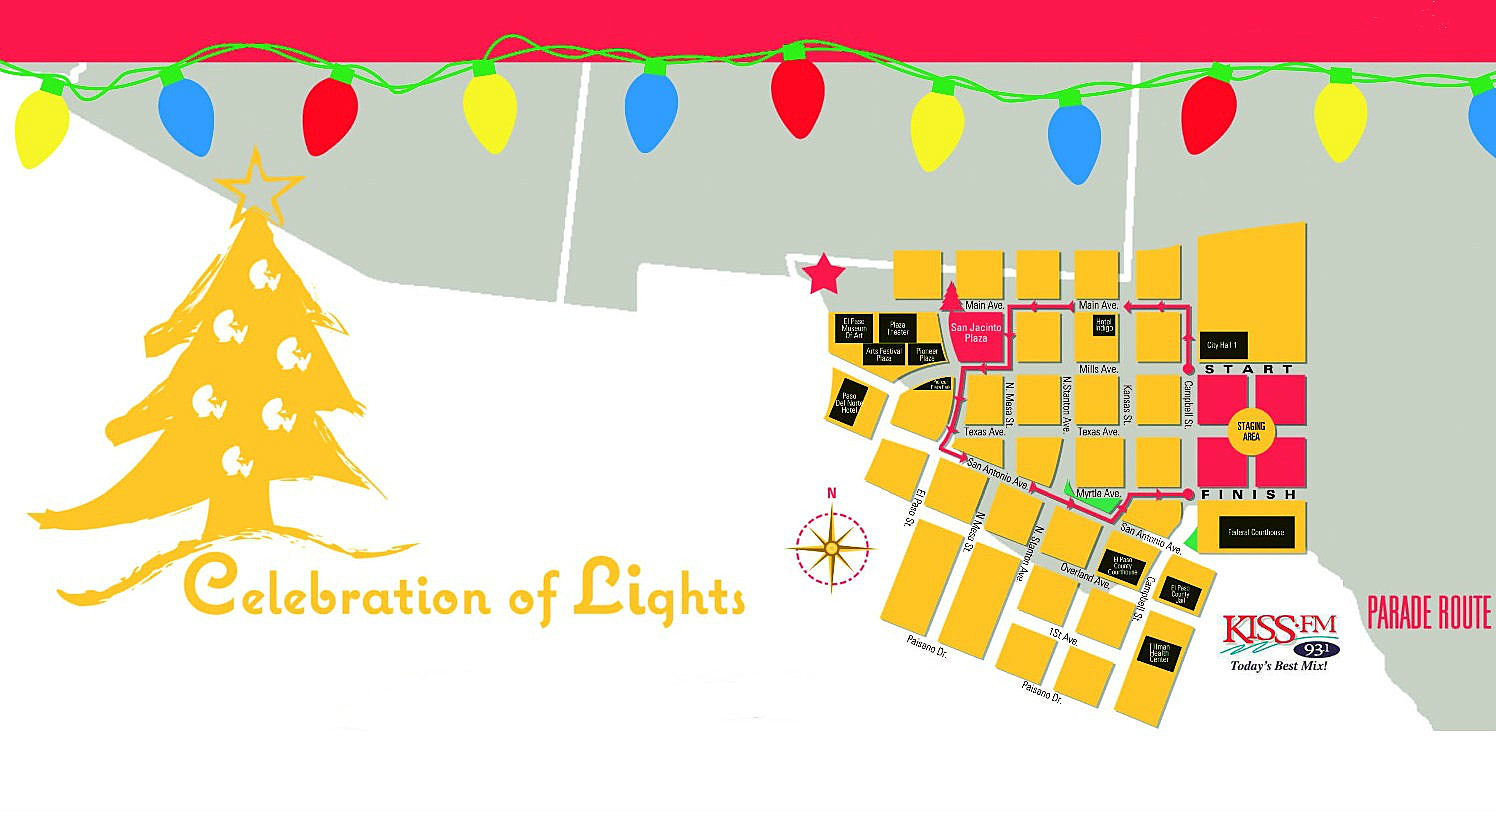 Celebration Of Lights Tree Lighting And Parade Schedule Events Parallel Christmas Click For Details Larger Image